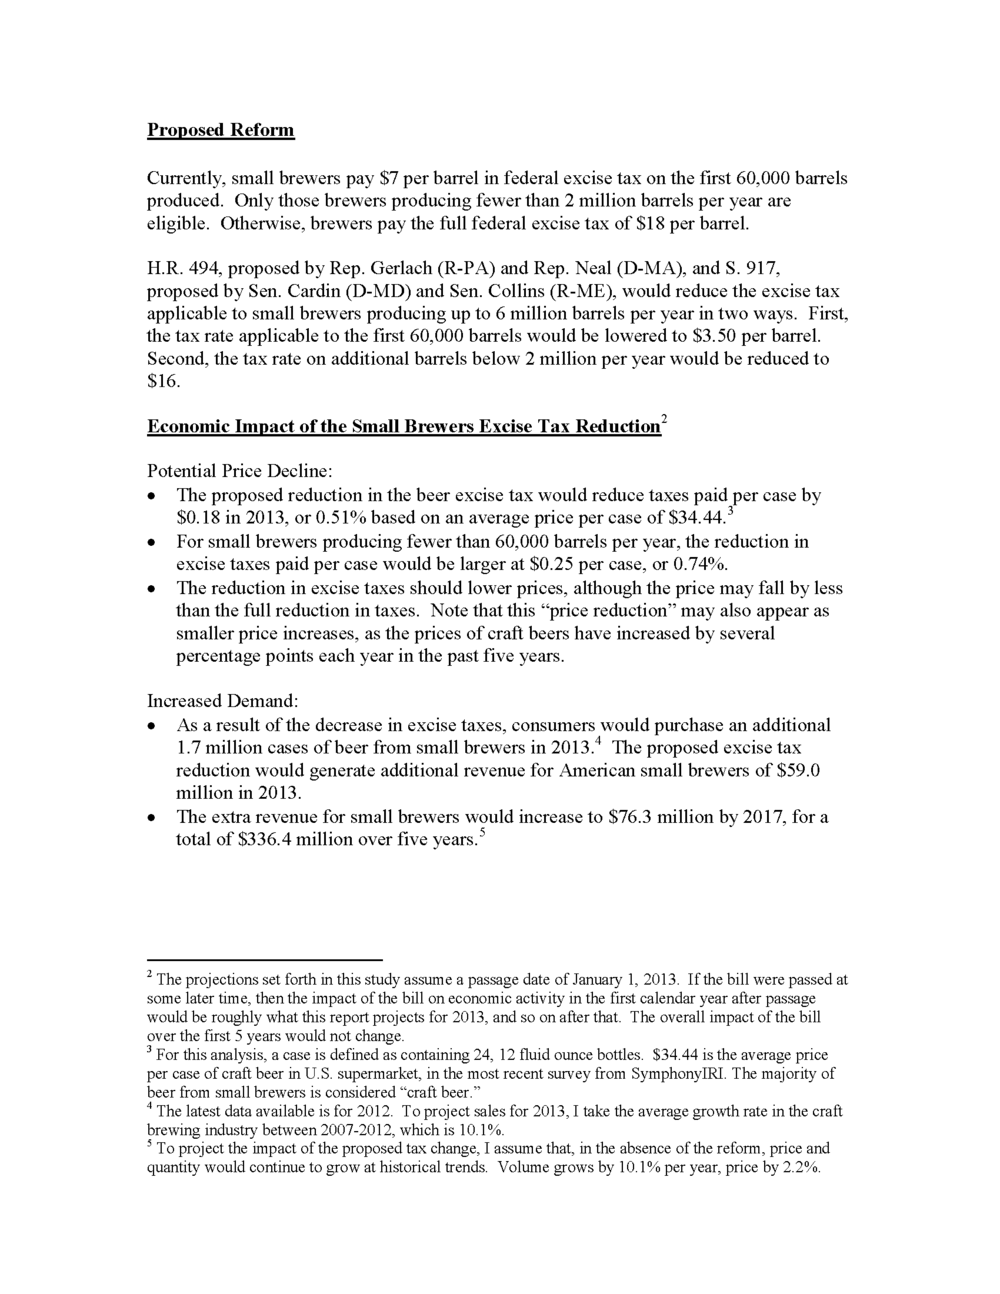 Friedman Excise Tax Report 2013_Page_3.png